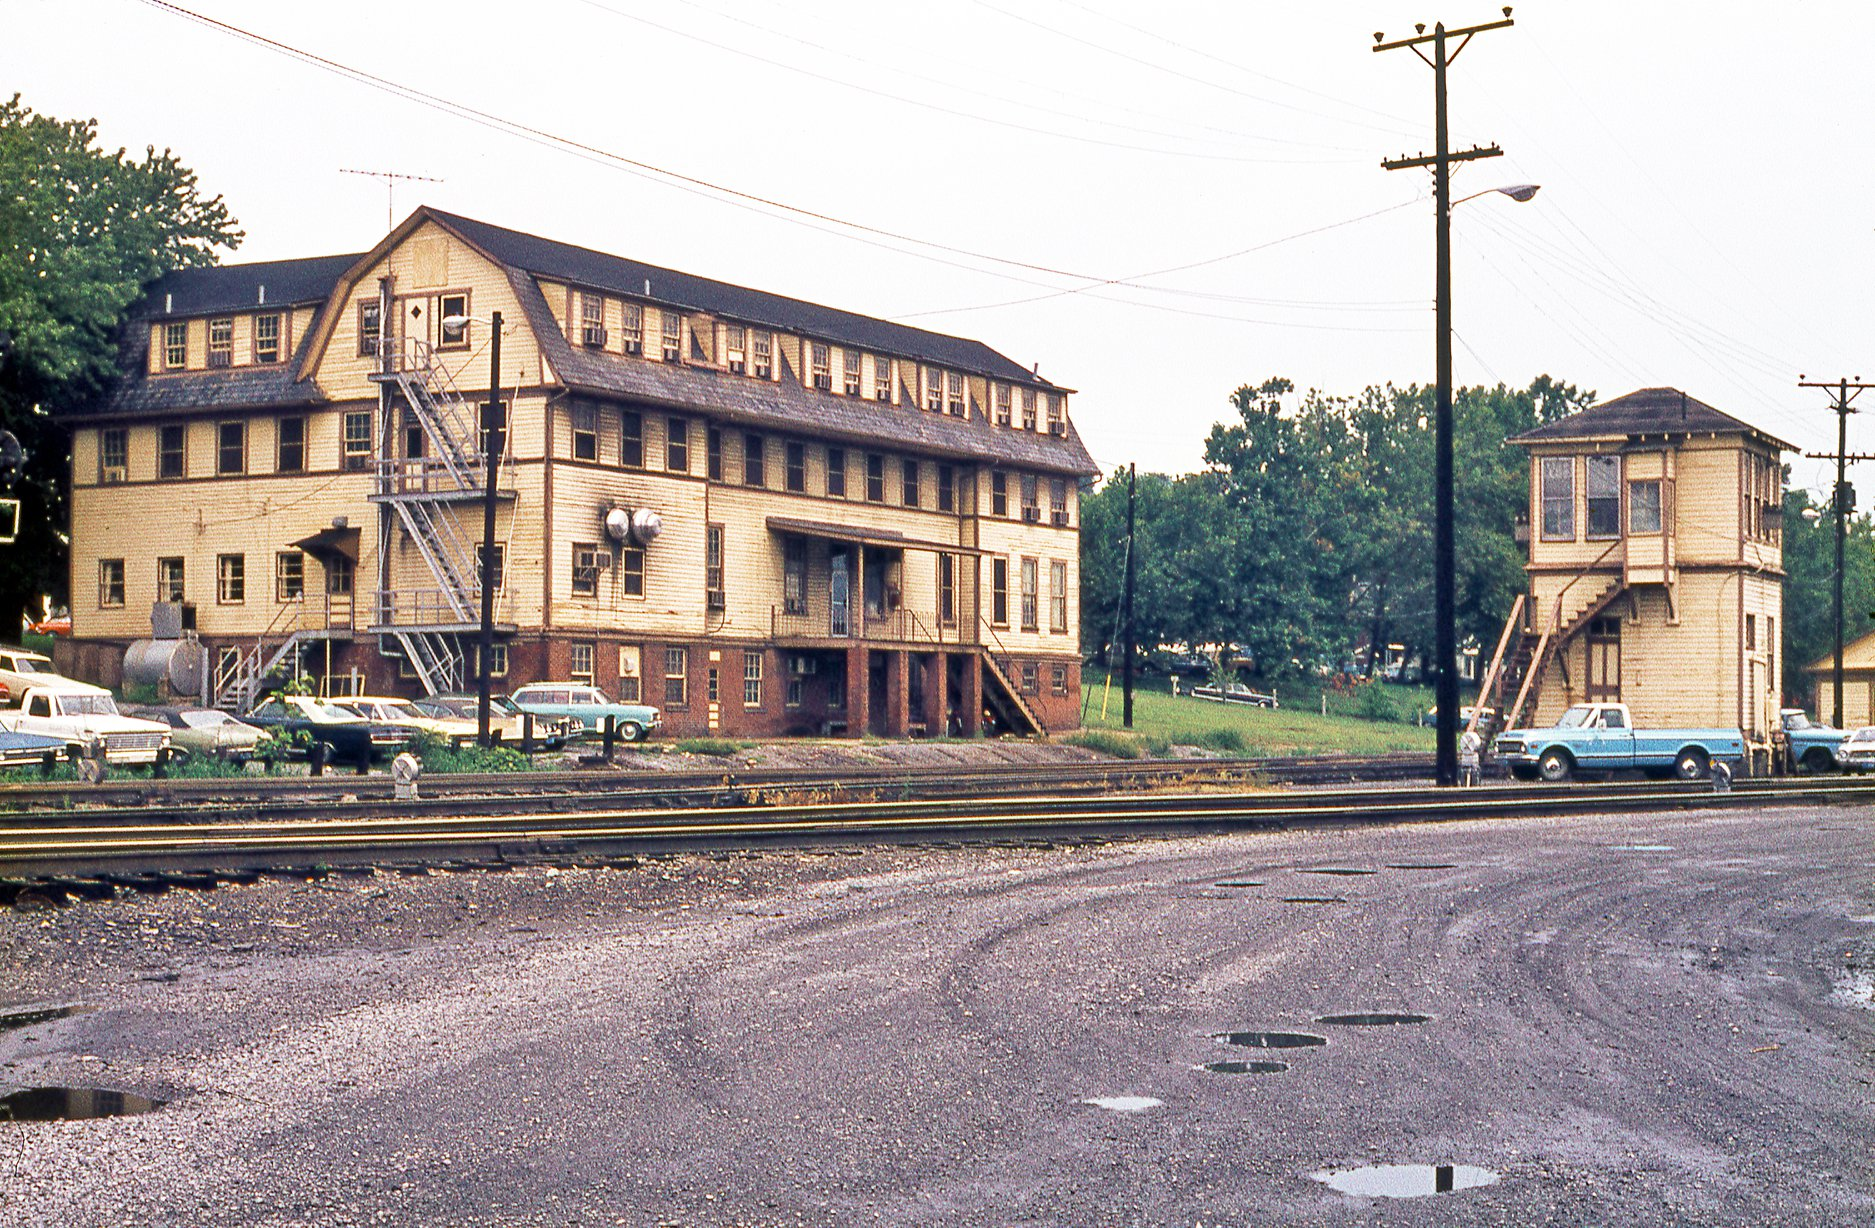 File:B&O Railroad YMCA and WB Tower at Brunswick, MD on Aug